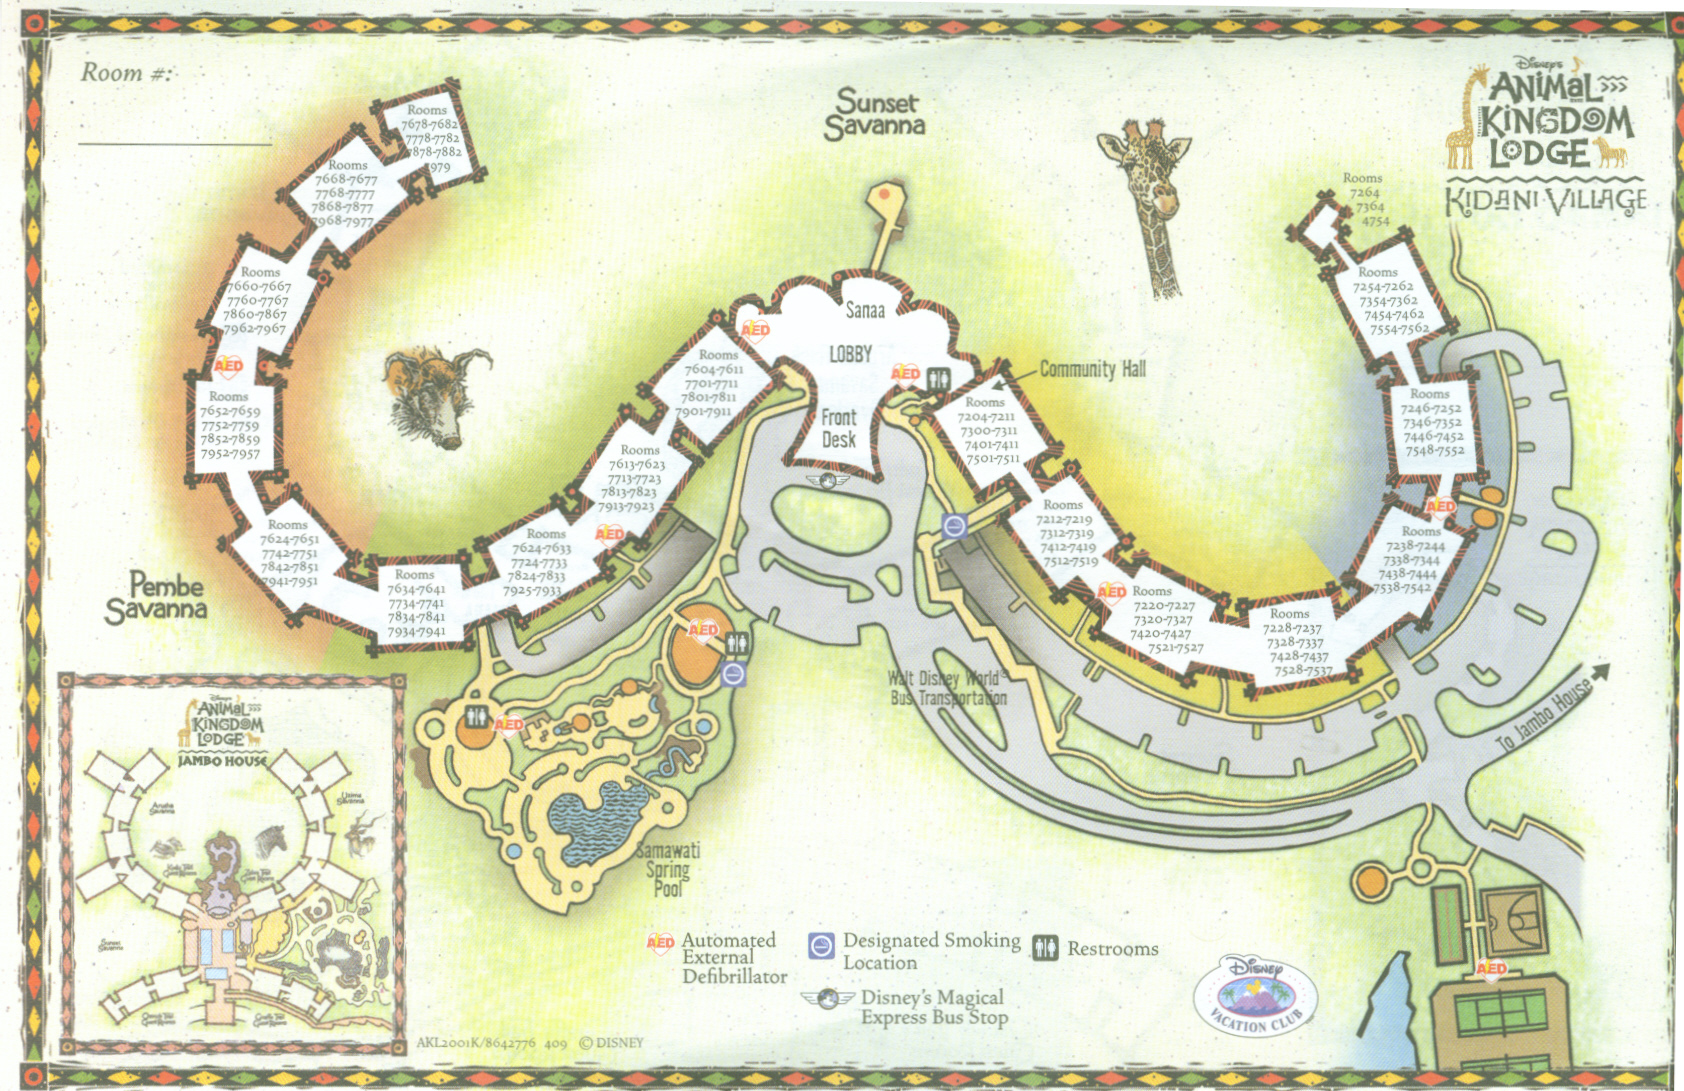 Animal kingdom lodge villas at walt disney world resort - 3 bedroom grand villa disney animal kingdom ...